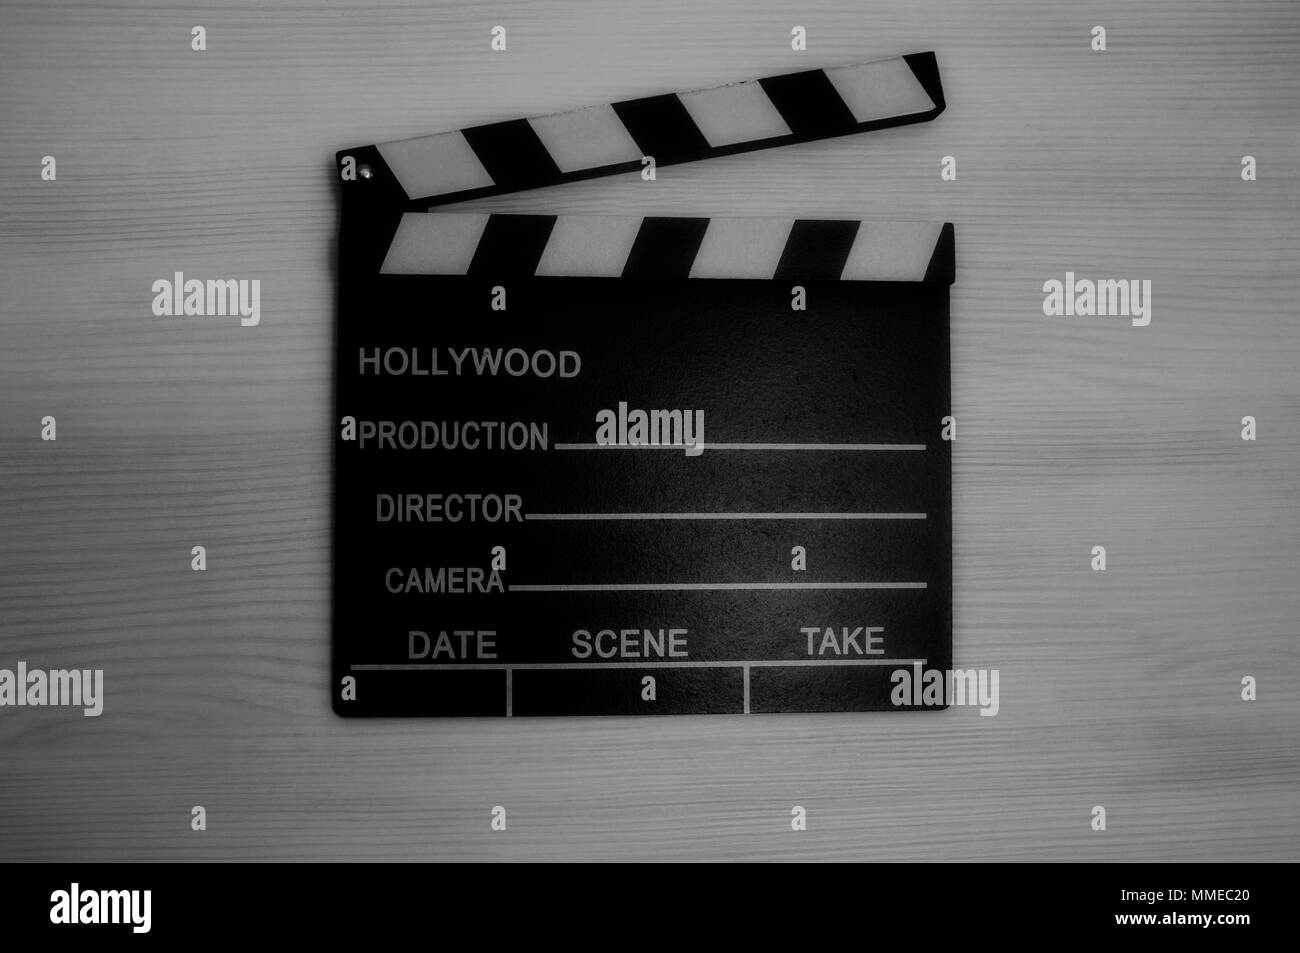 Clapboard, film production slate in black and white - Stock Image